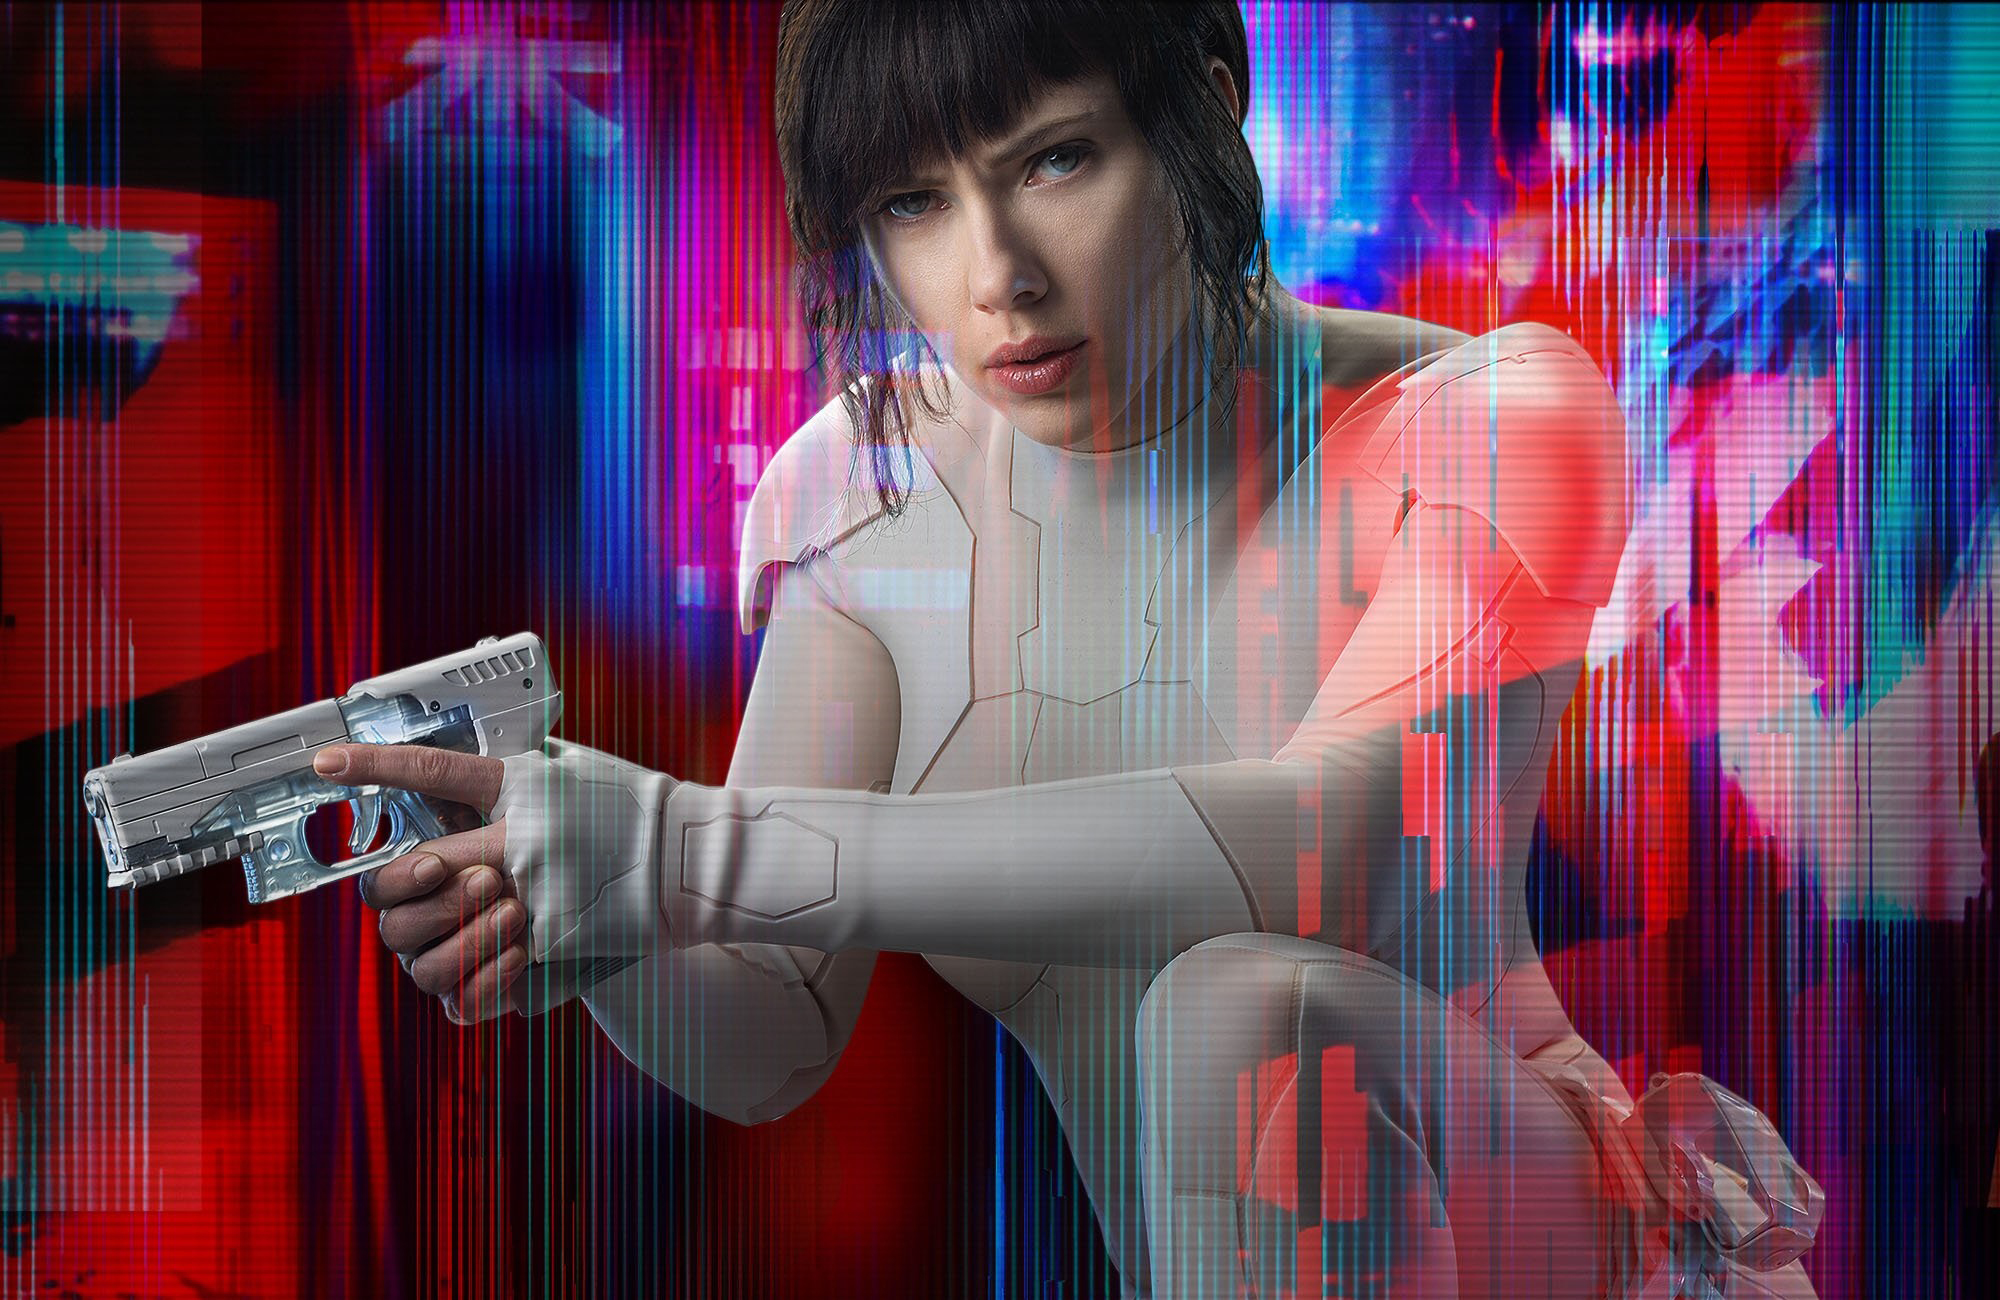 Fondos Ghost in the Shell: el alma de la máquina ...